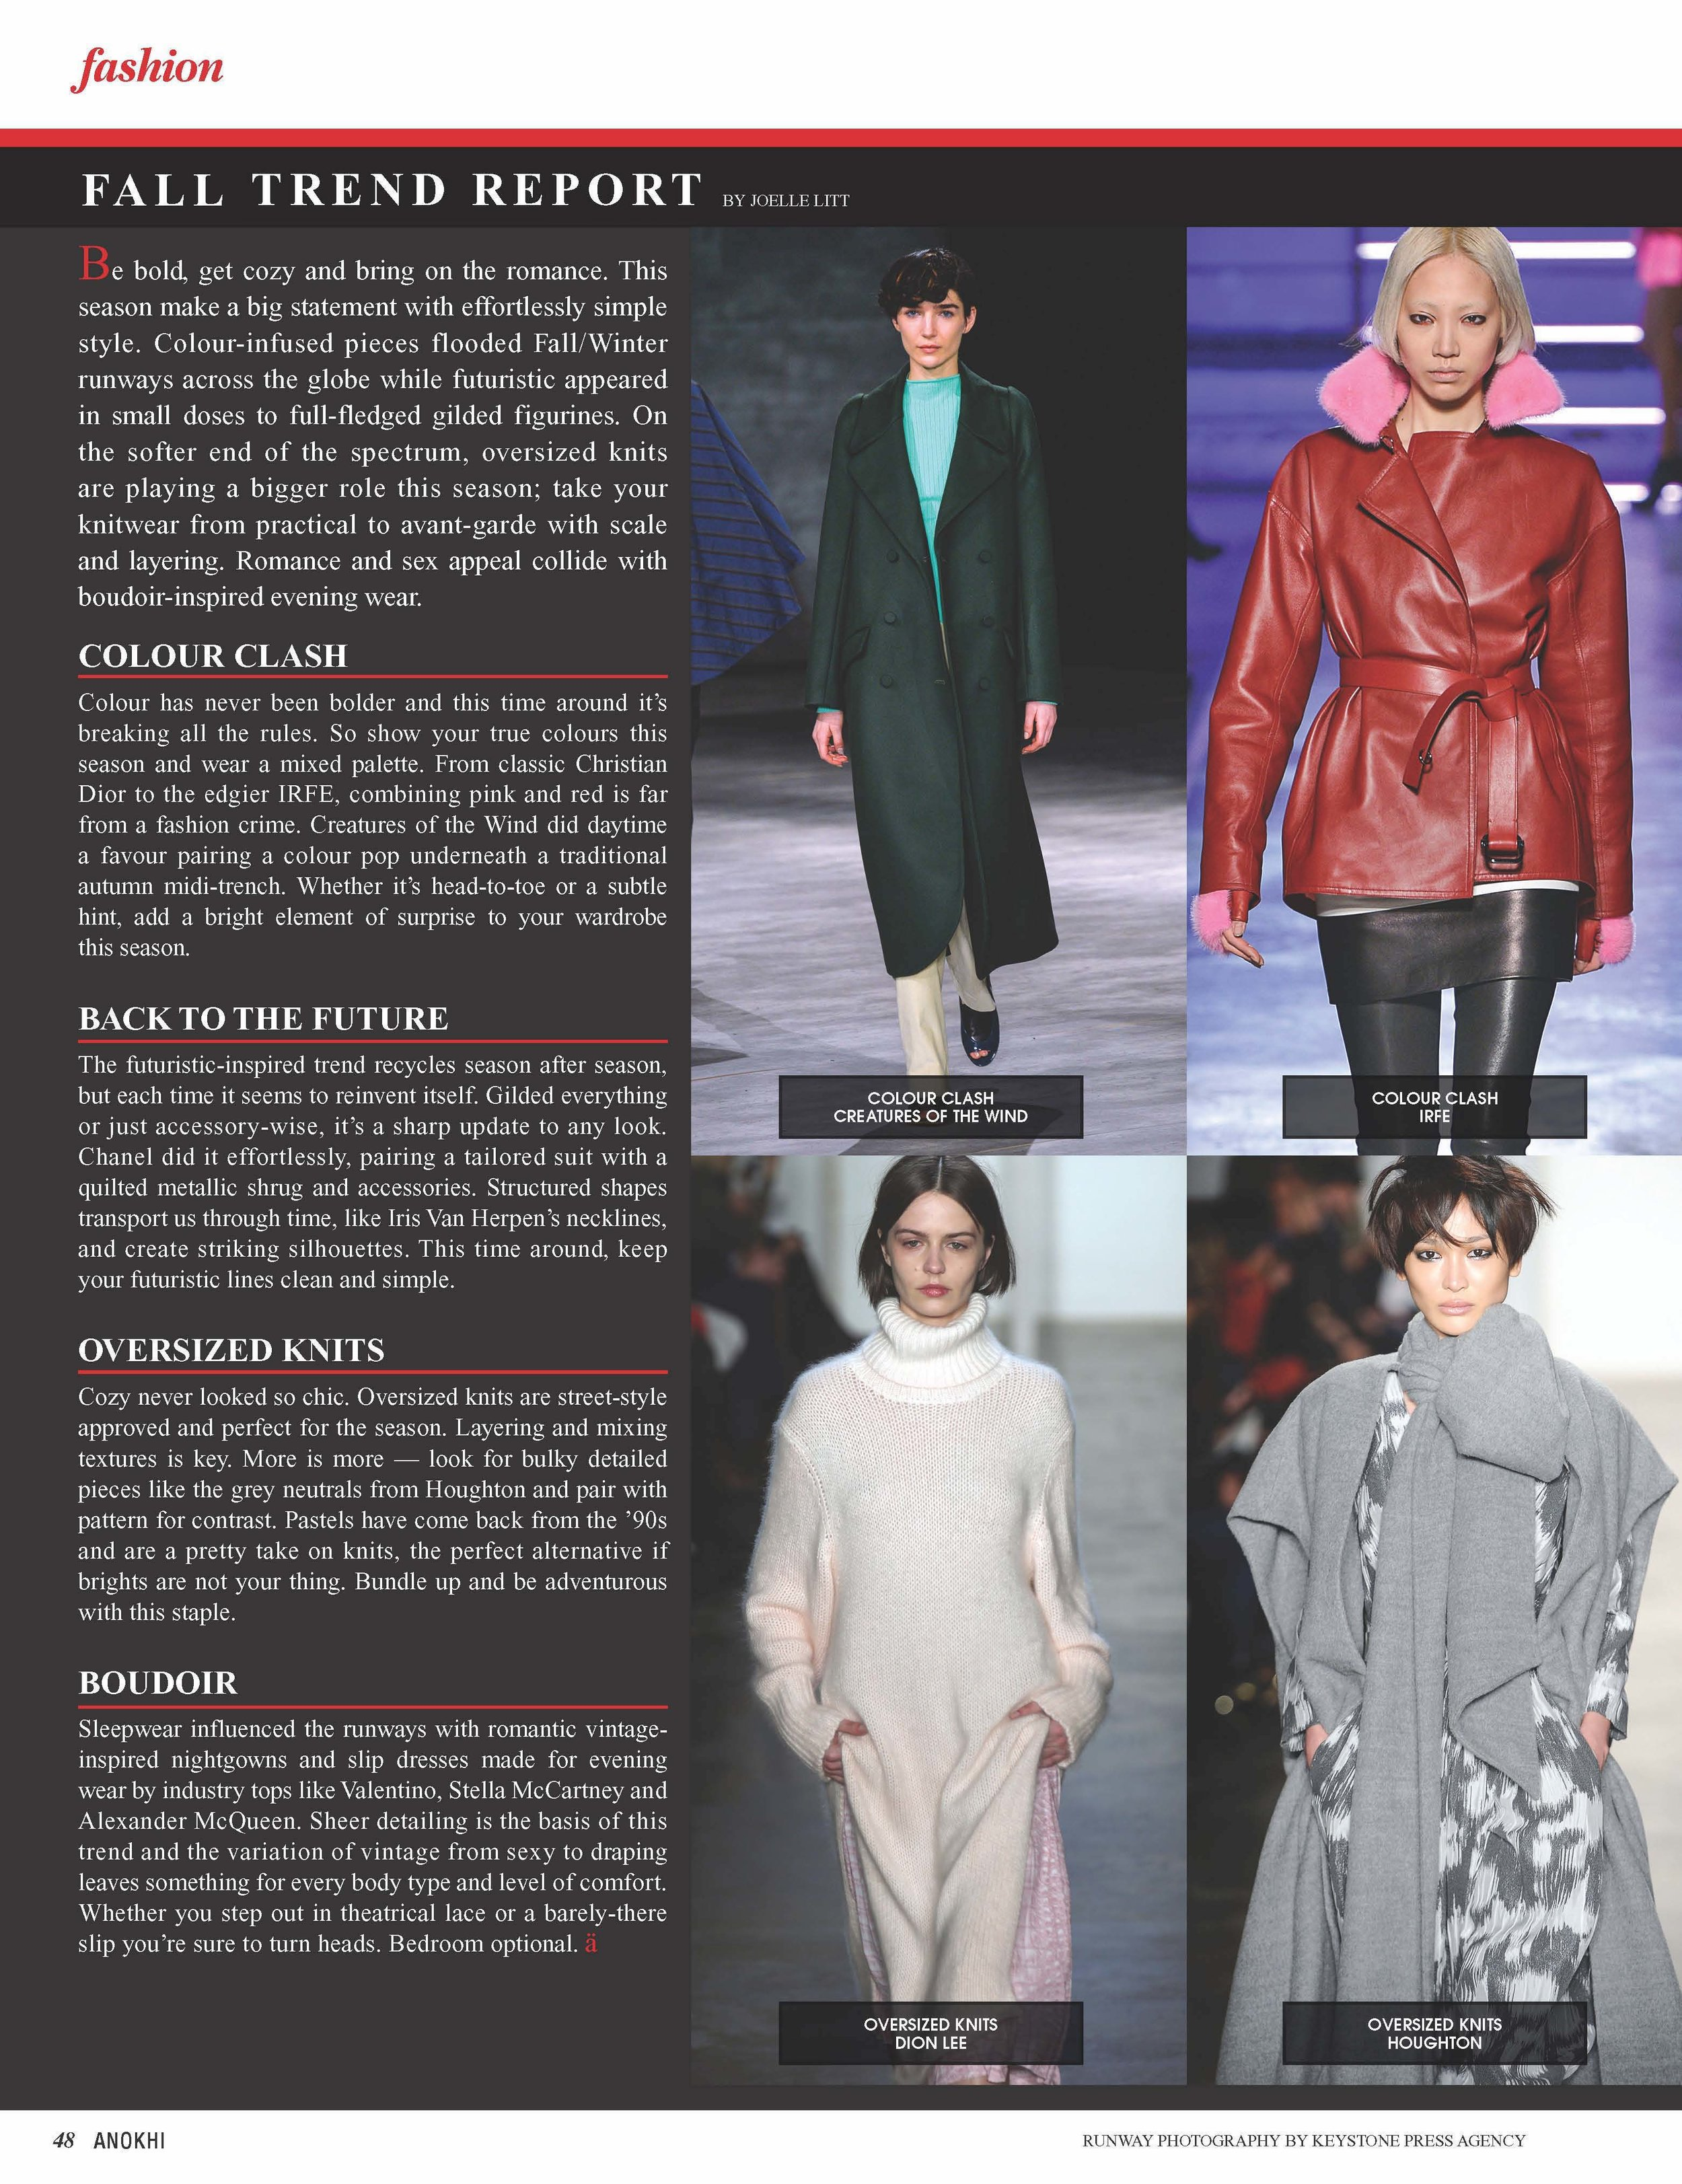 oct2014 fashion_Page_02.jpg